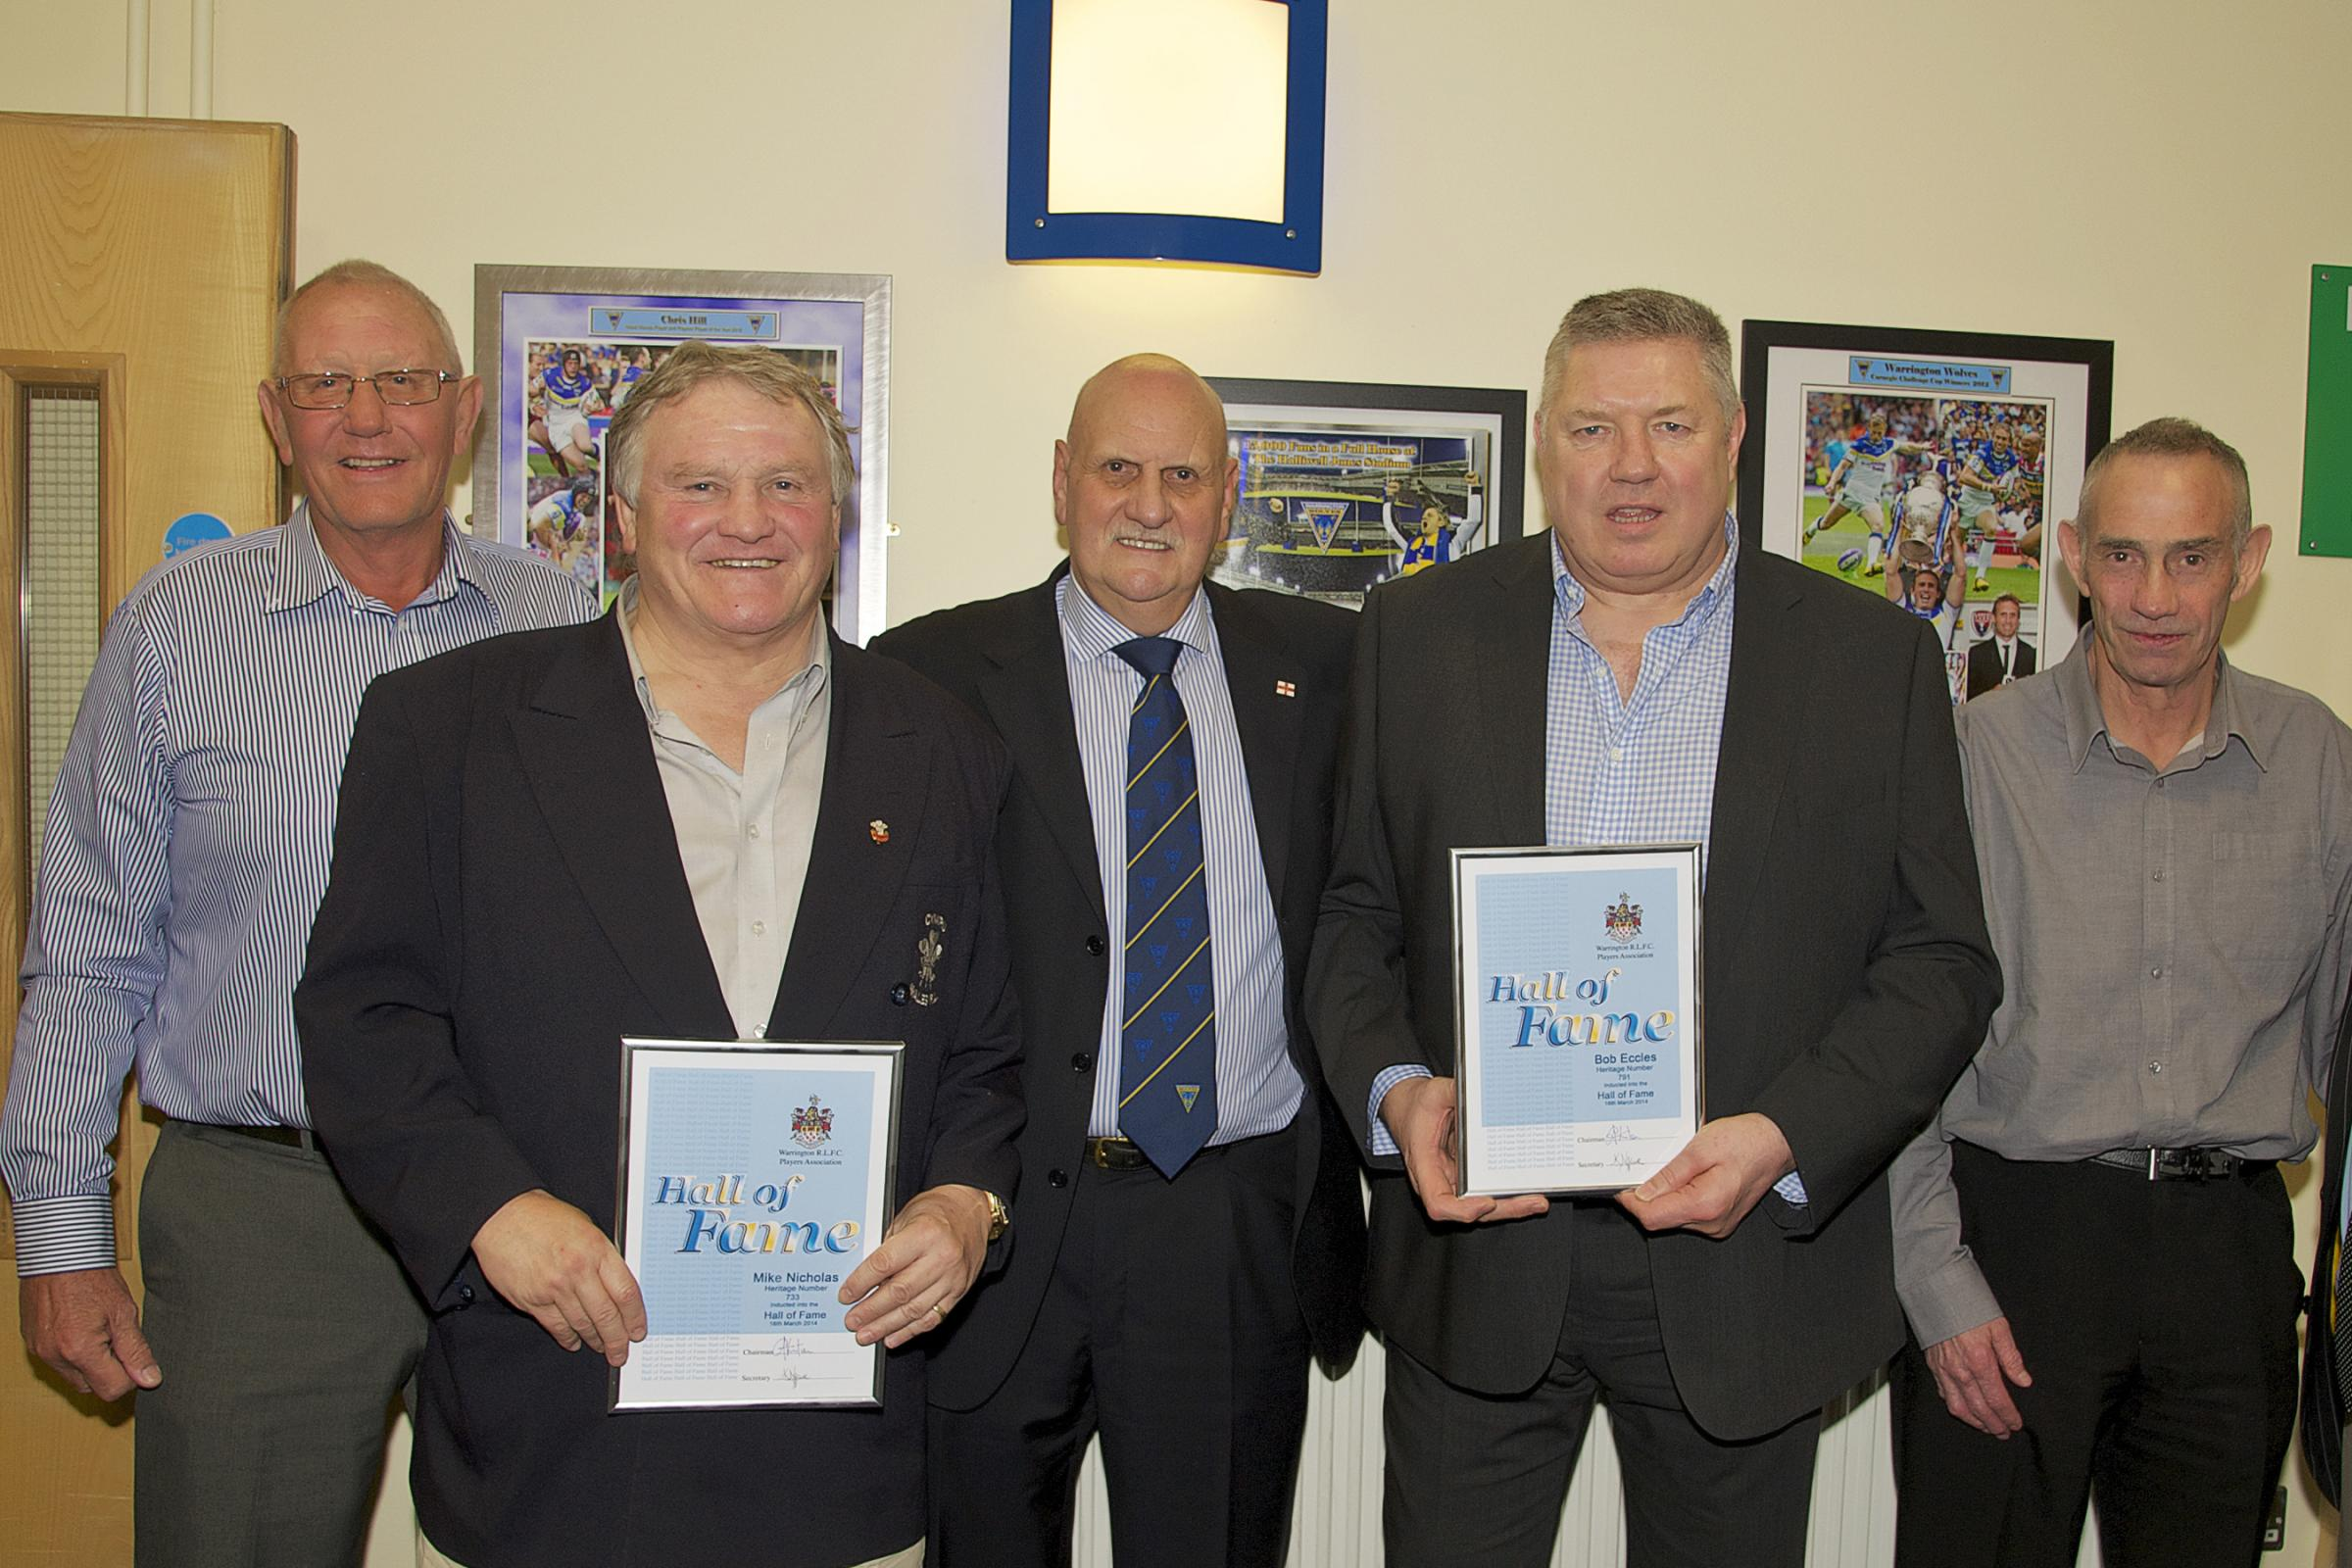 Bobby Wanbon, left, and Derek Whitehead, right, welcomed Nicholas, second from left, and Eccles, second from right, to the hall of fame after induction by chairman George Thornton, centre